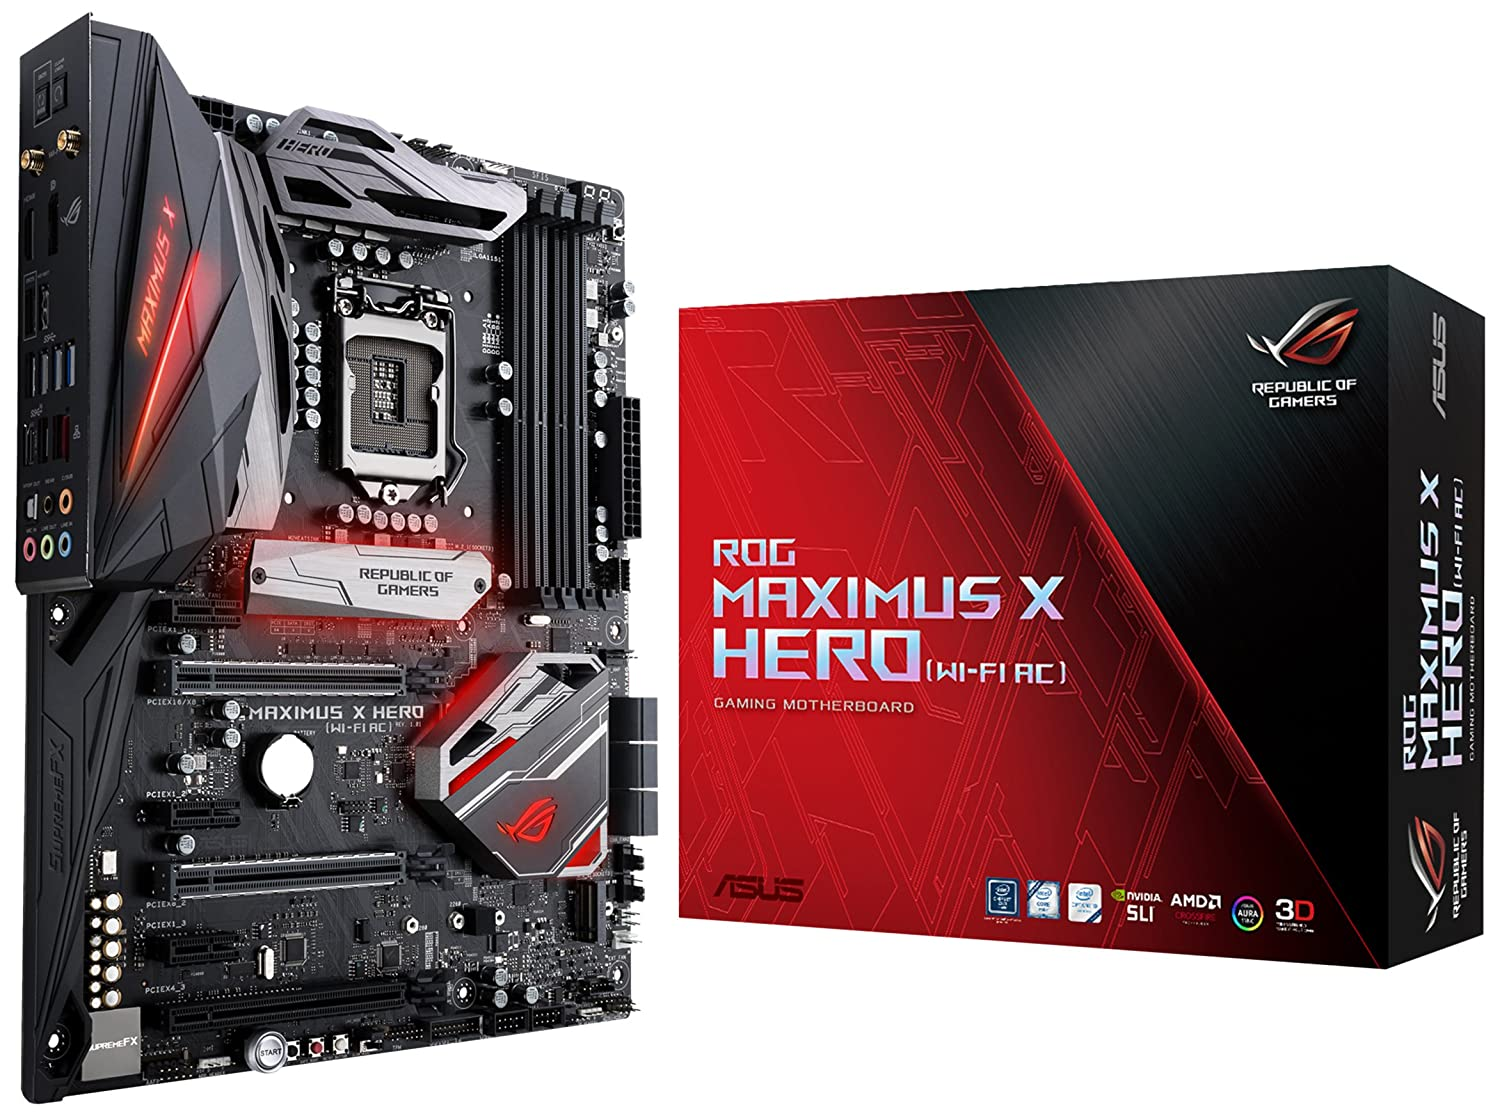 ASUS ROG Maximus X Hero (Wi-Fi AC) LGA1151 DDR4 DP HDMI M 2 Z370 ATX  Motherboard with onboard 802 11ac WiFi, Gigabit LAN and USB 3 1 for 8th